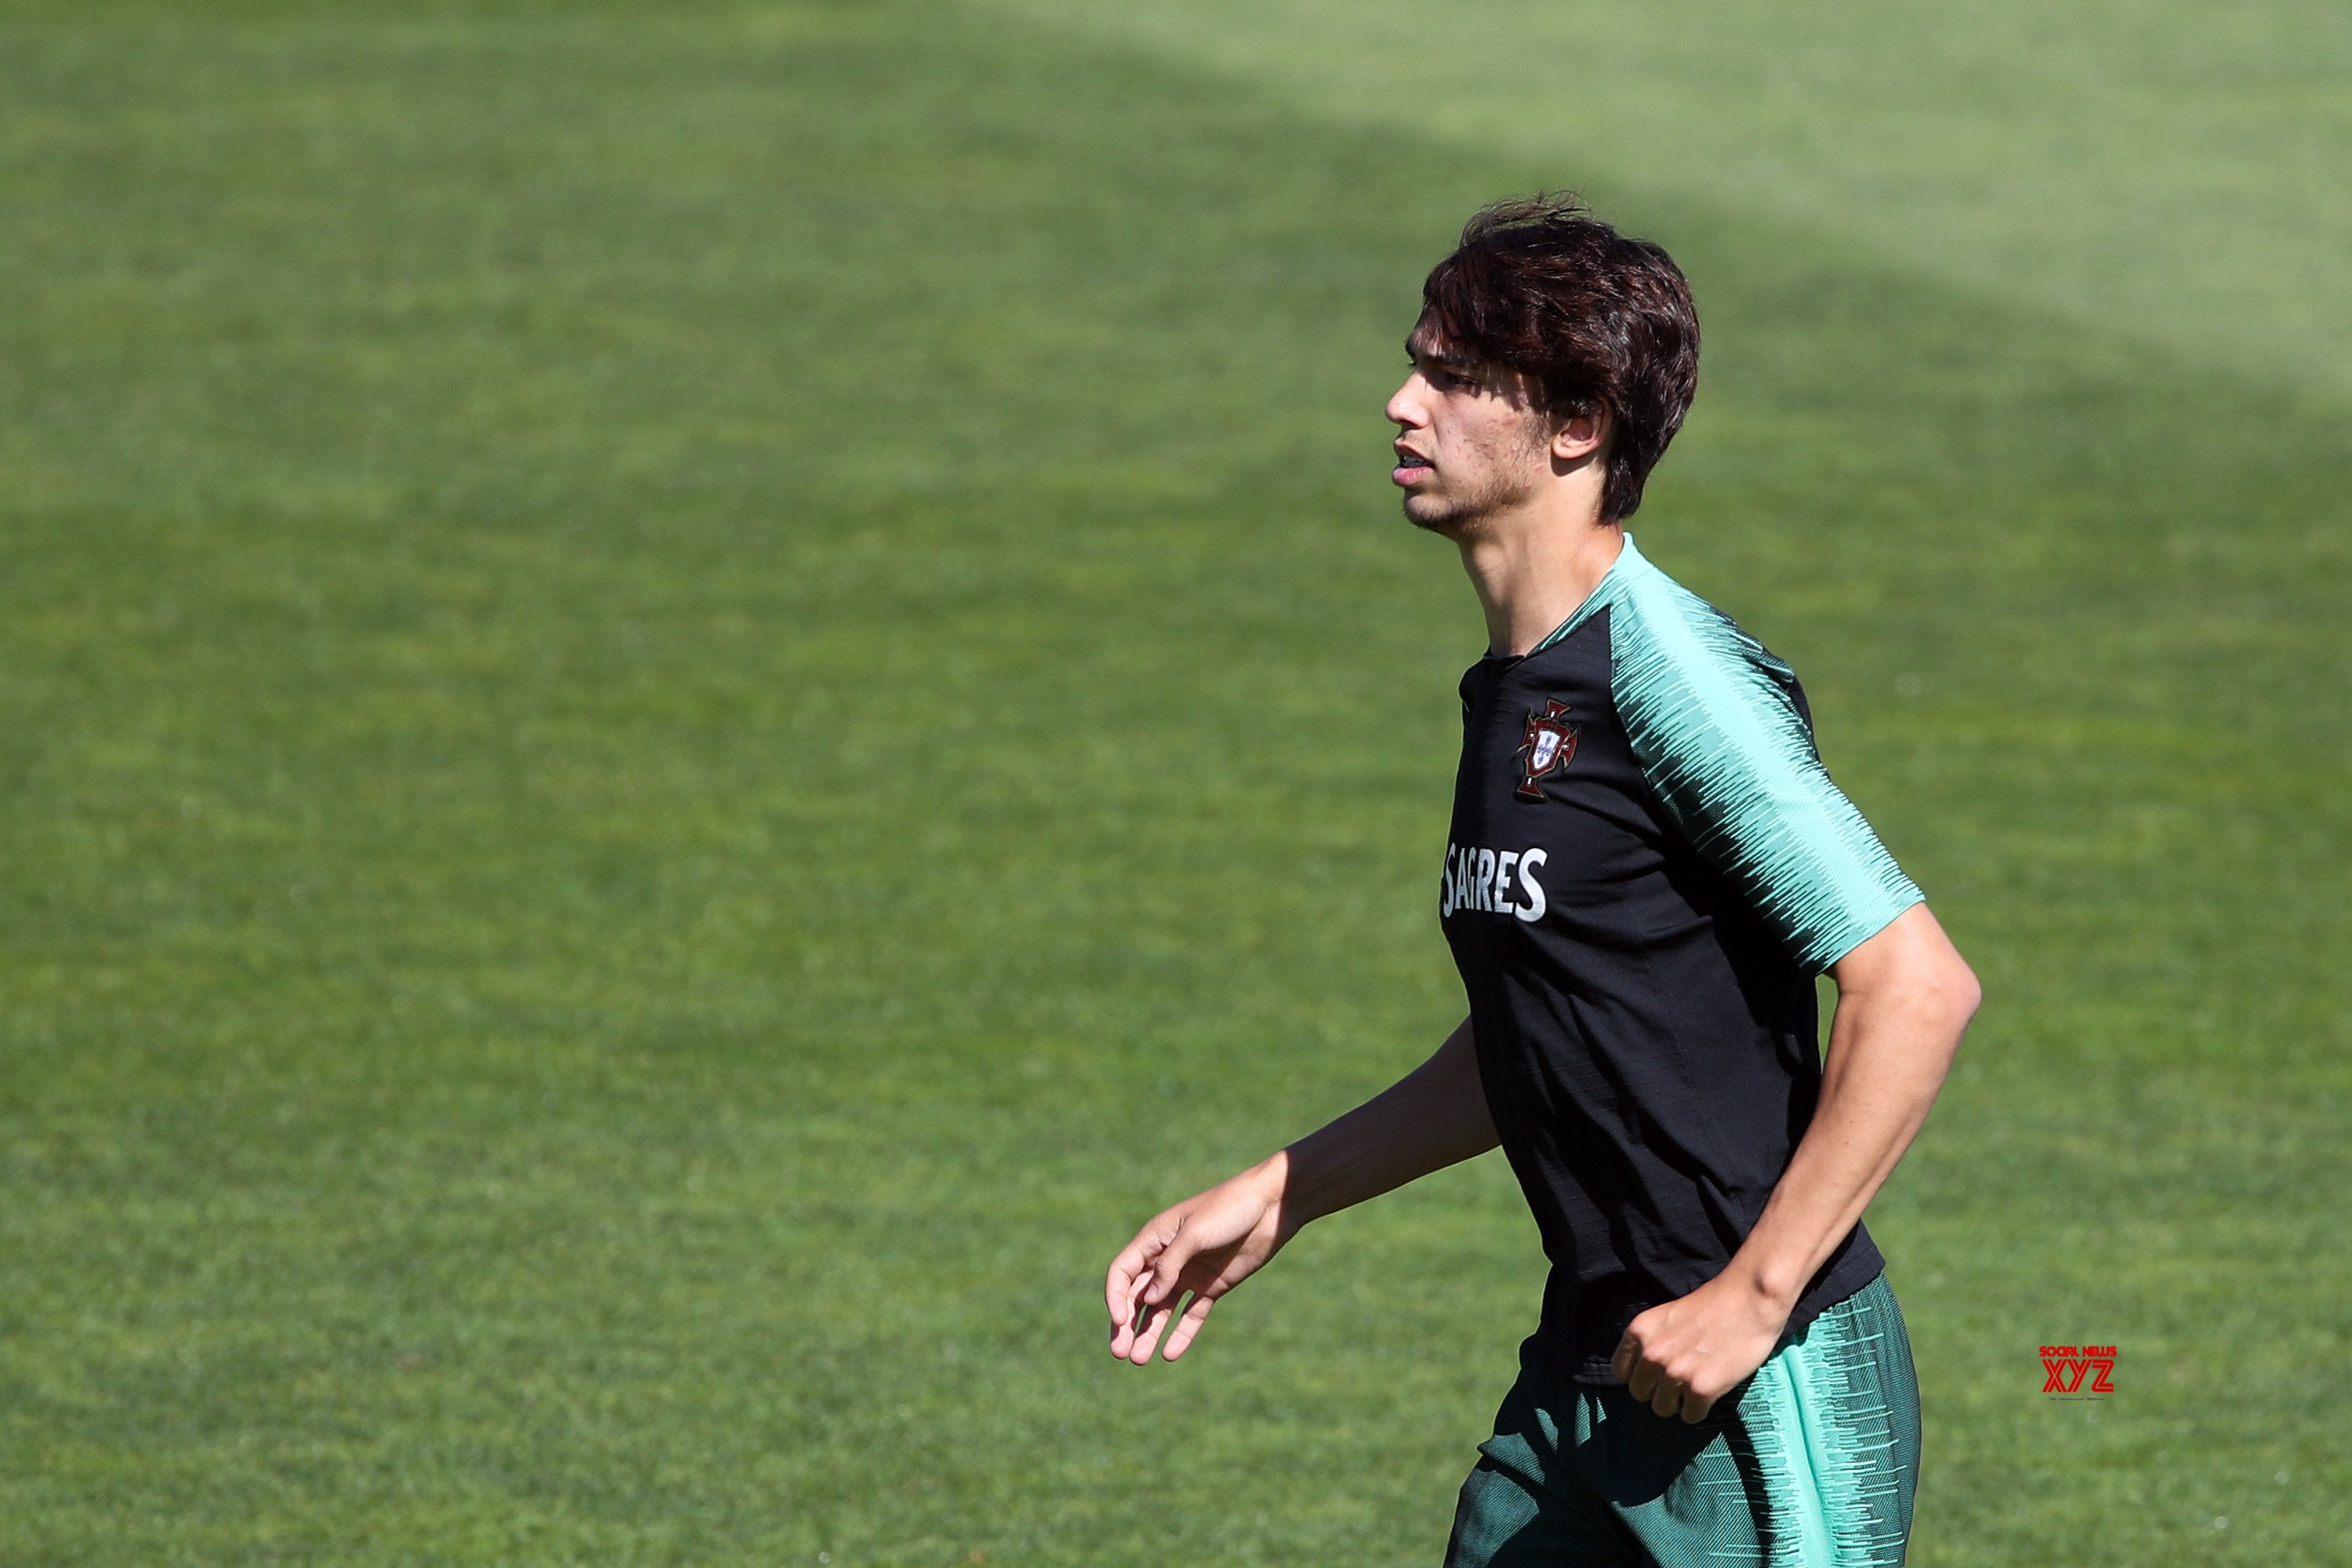 Atletico Madrid sign Joao Felix for $142 mn from Benfica